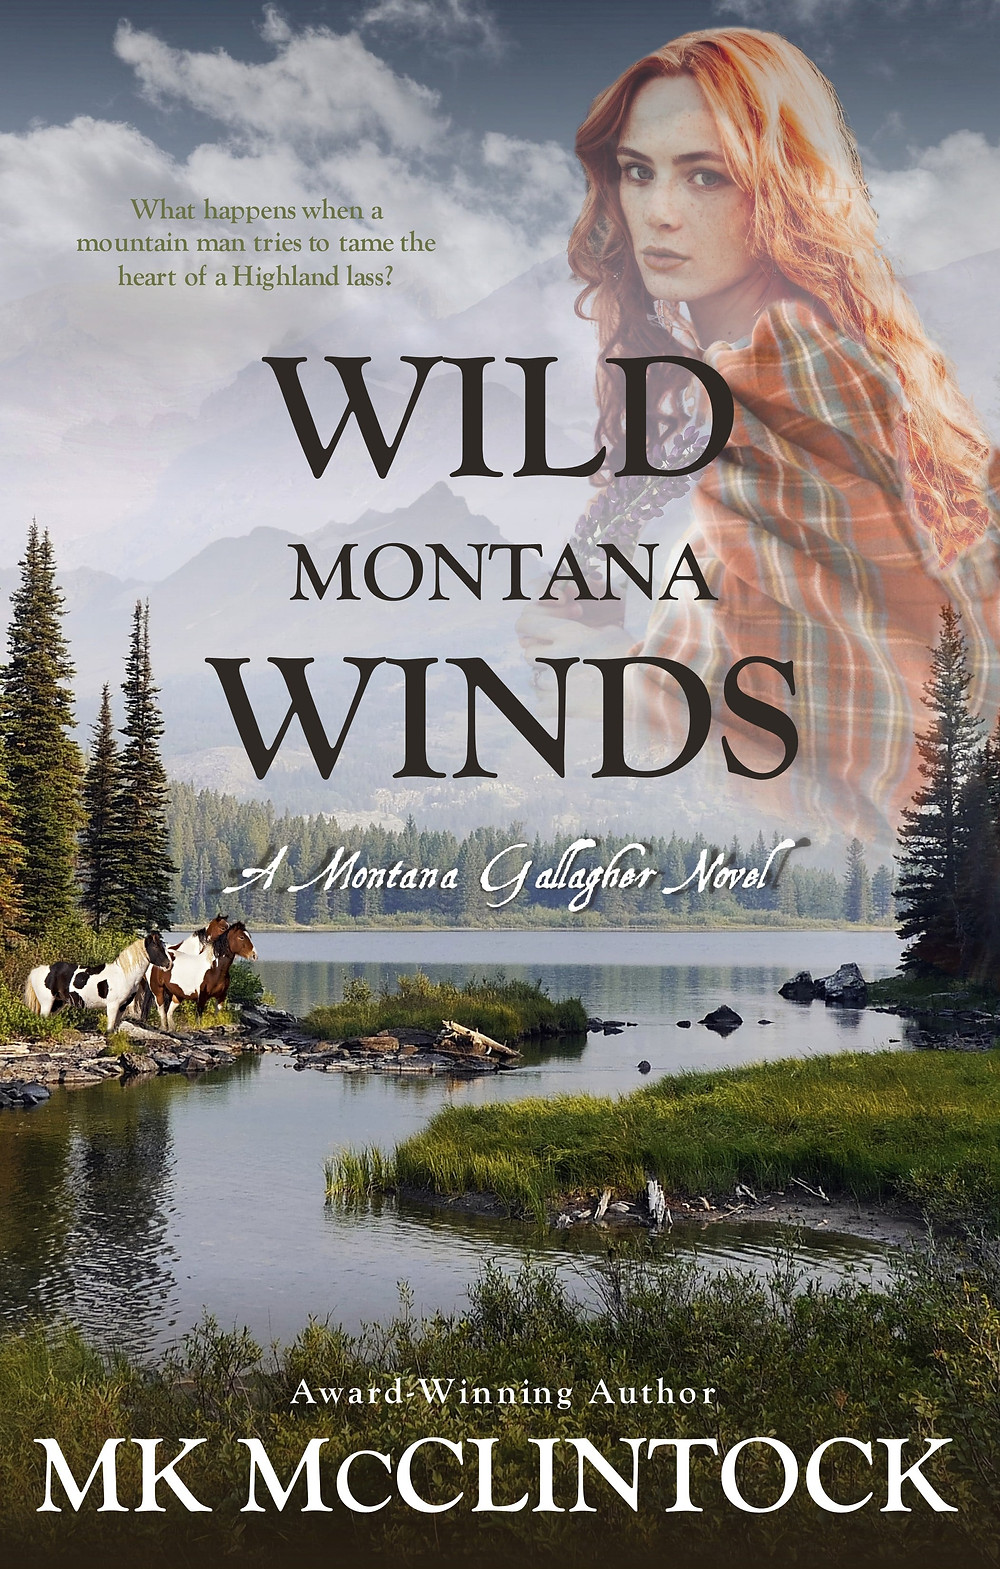 Wild Montana Winds by MK McClintock